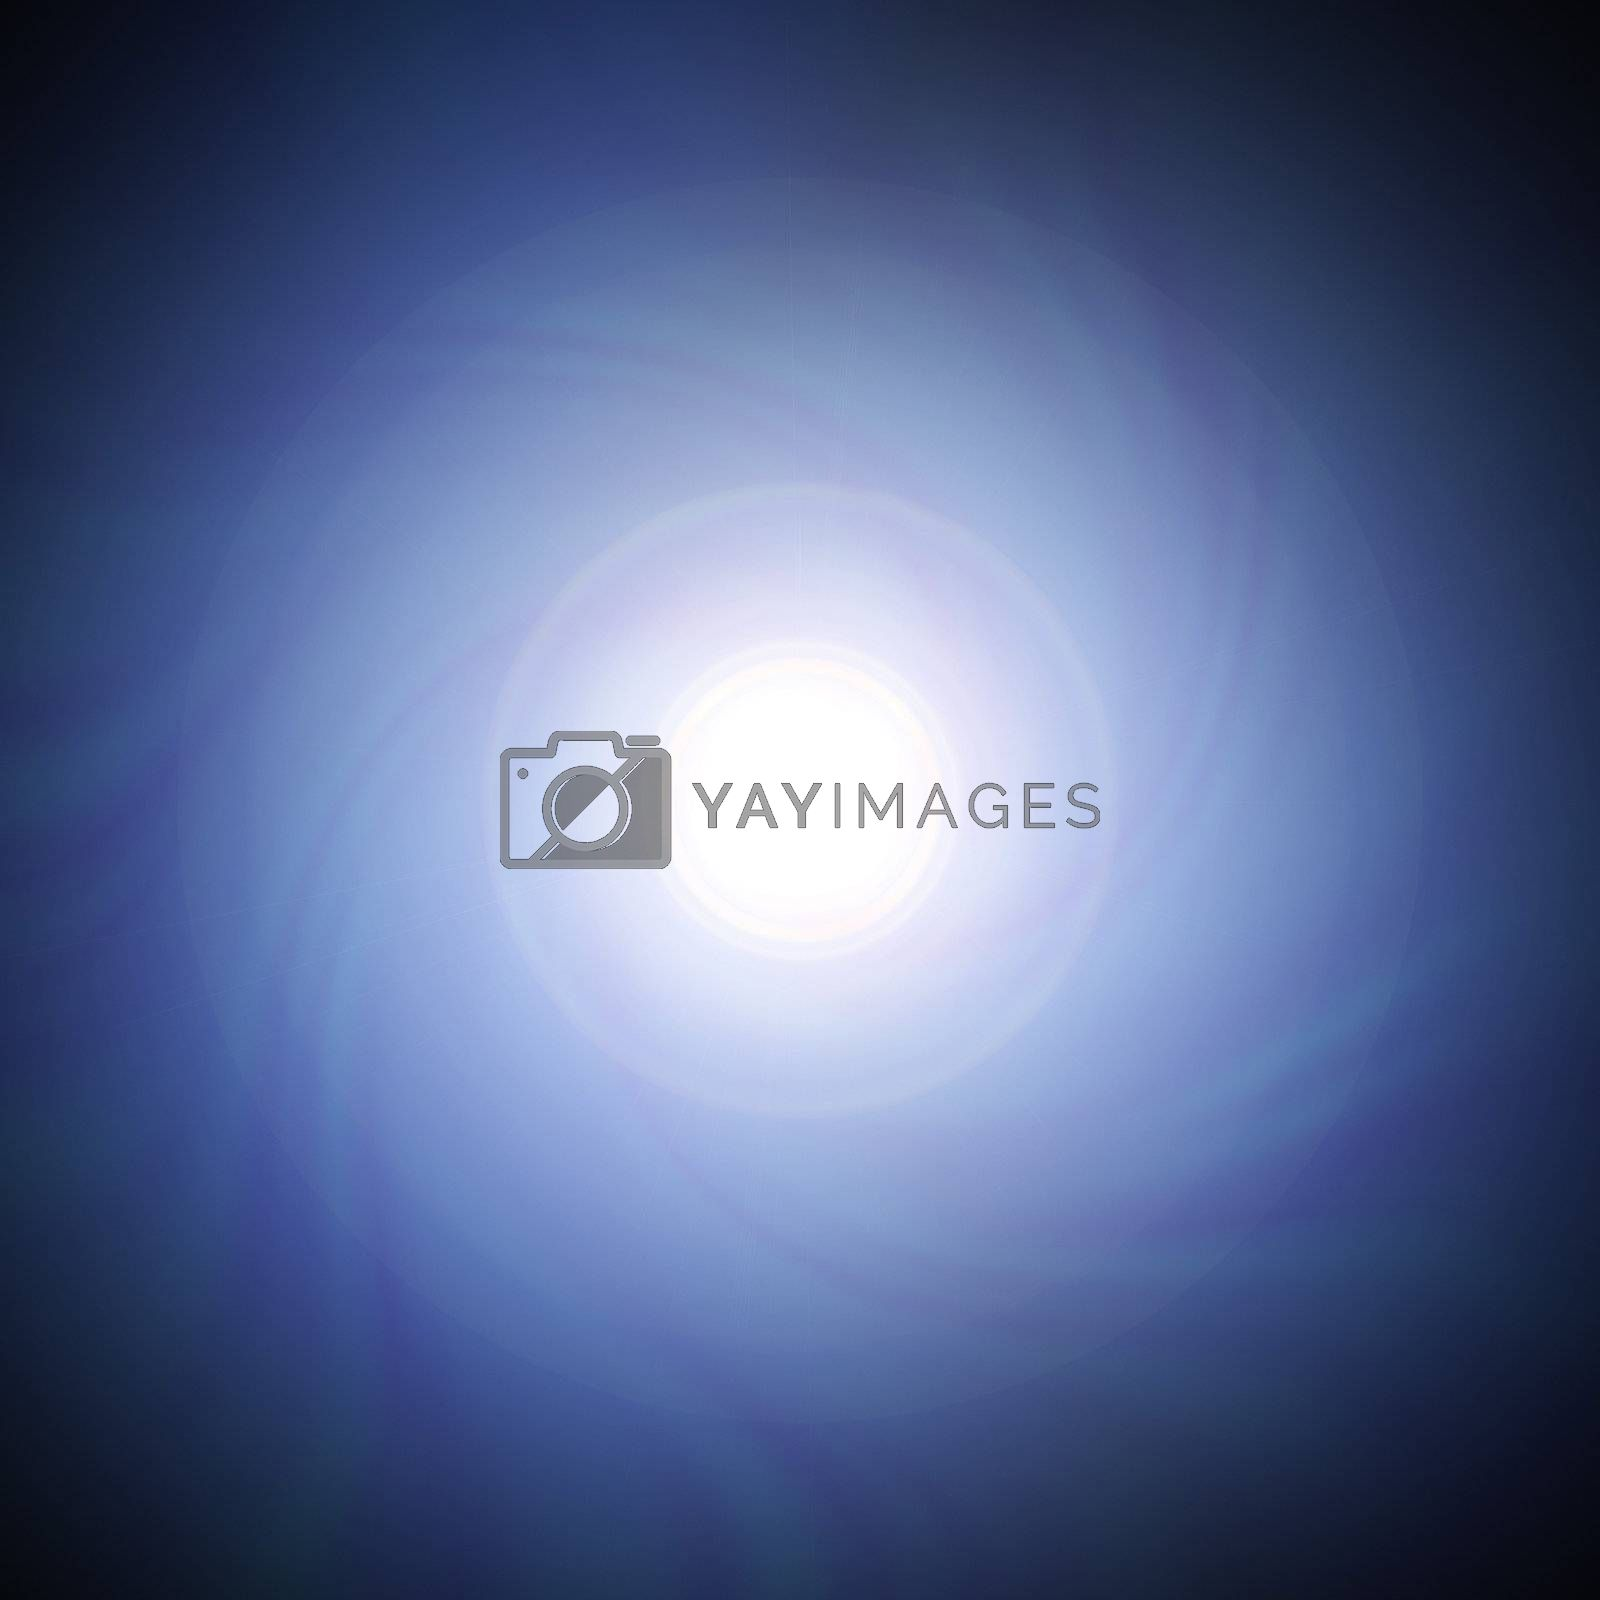 A lens flare background illustration - swirling towards a central vortex